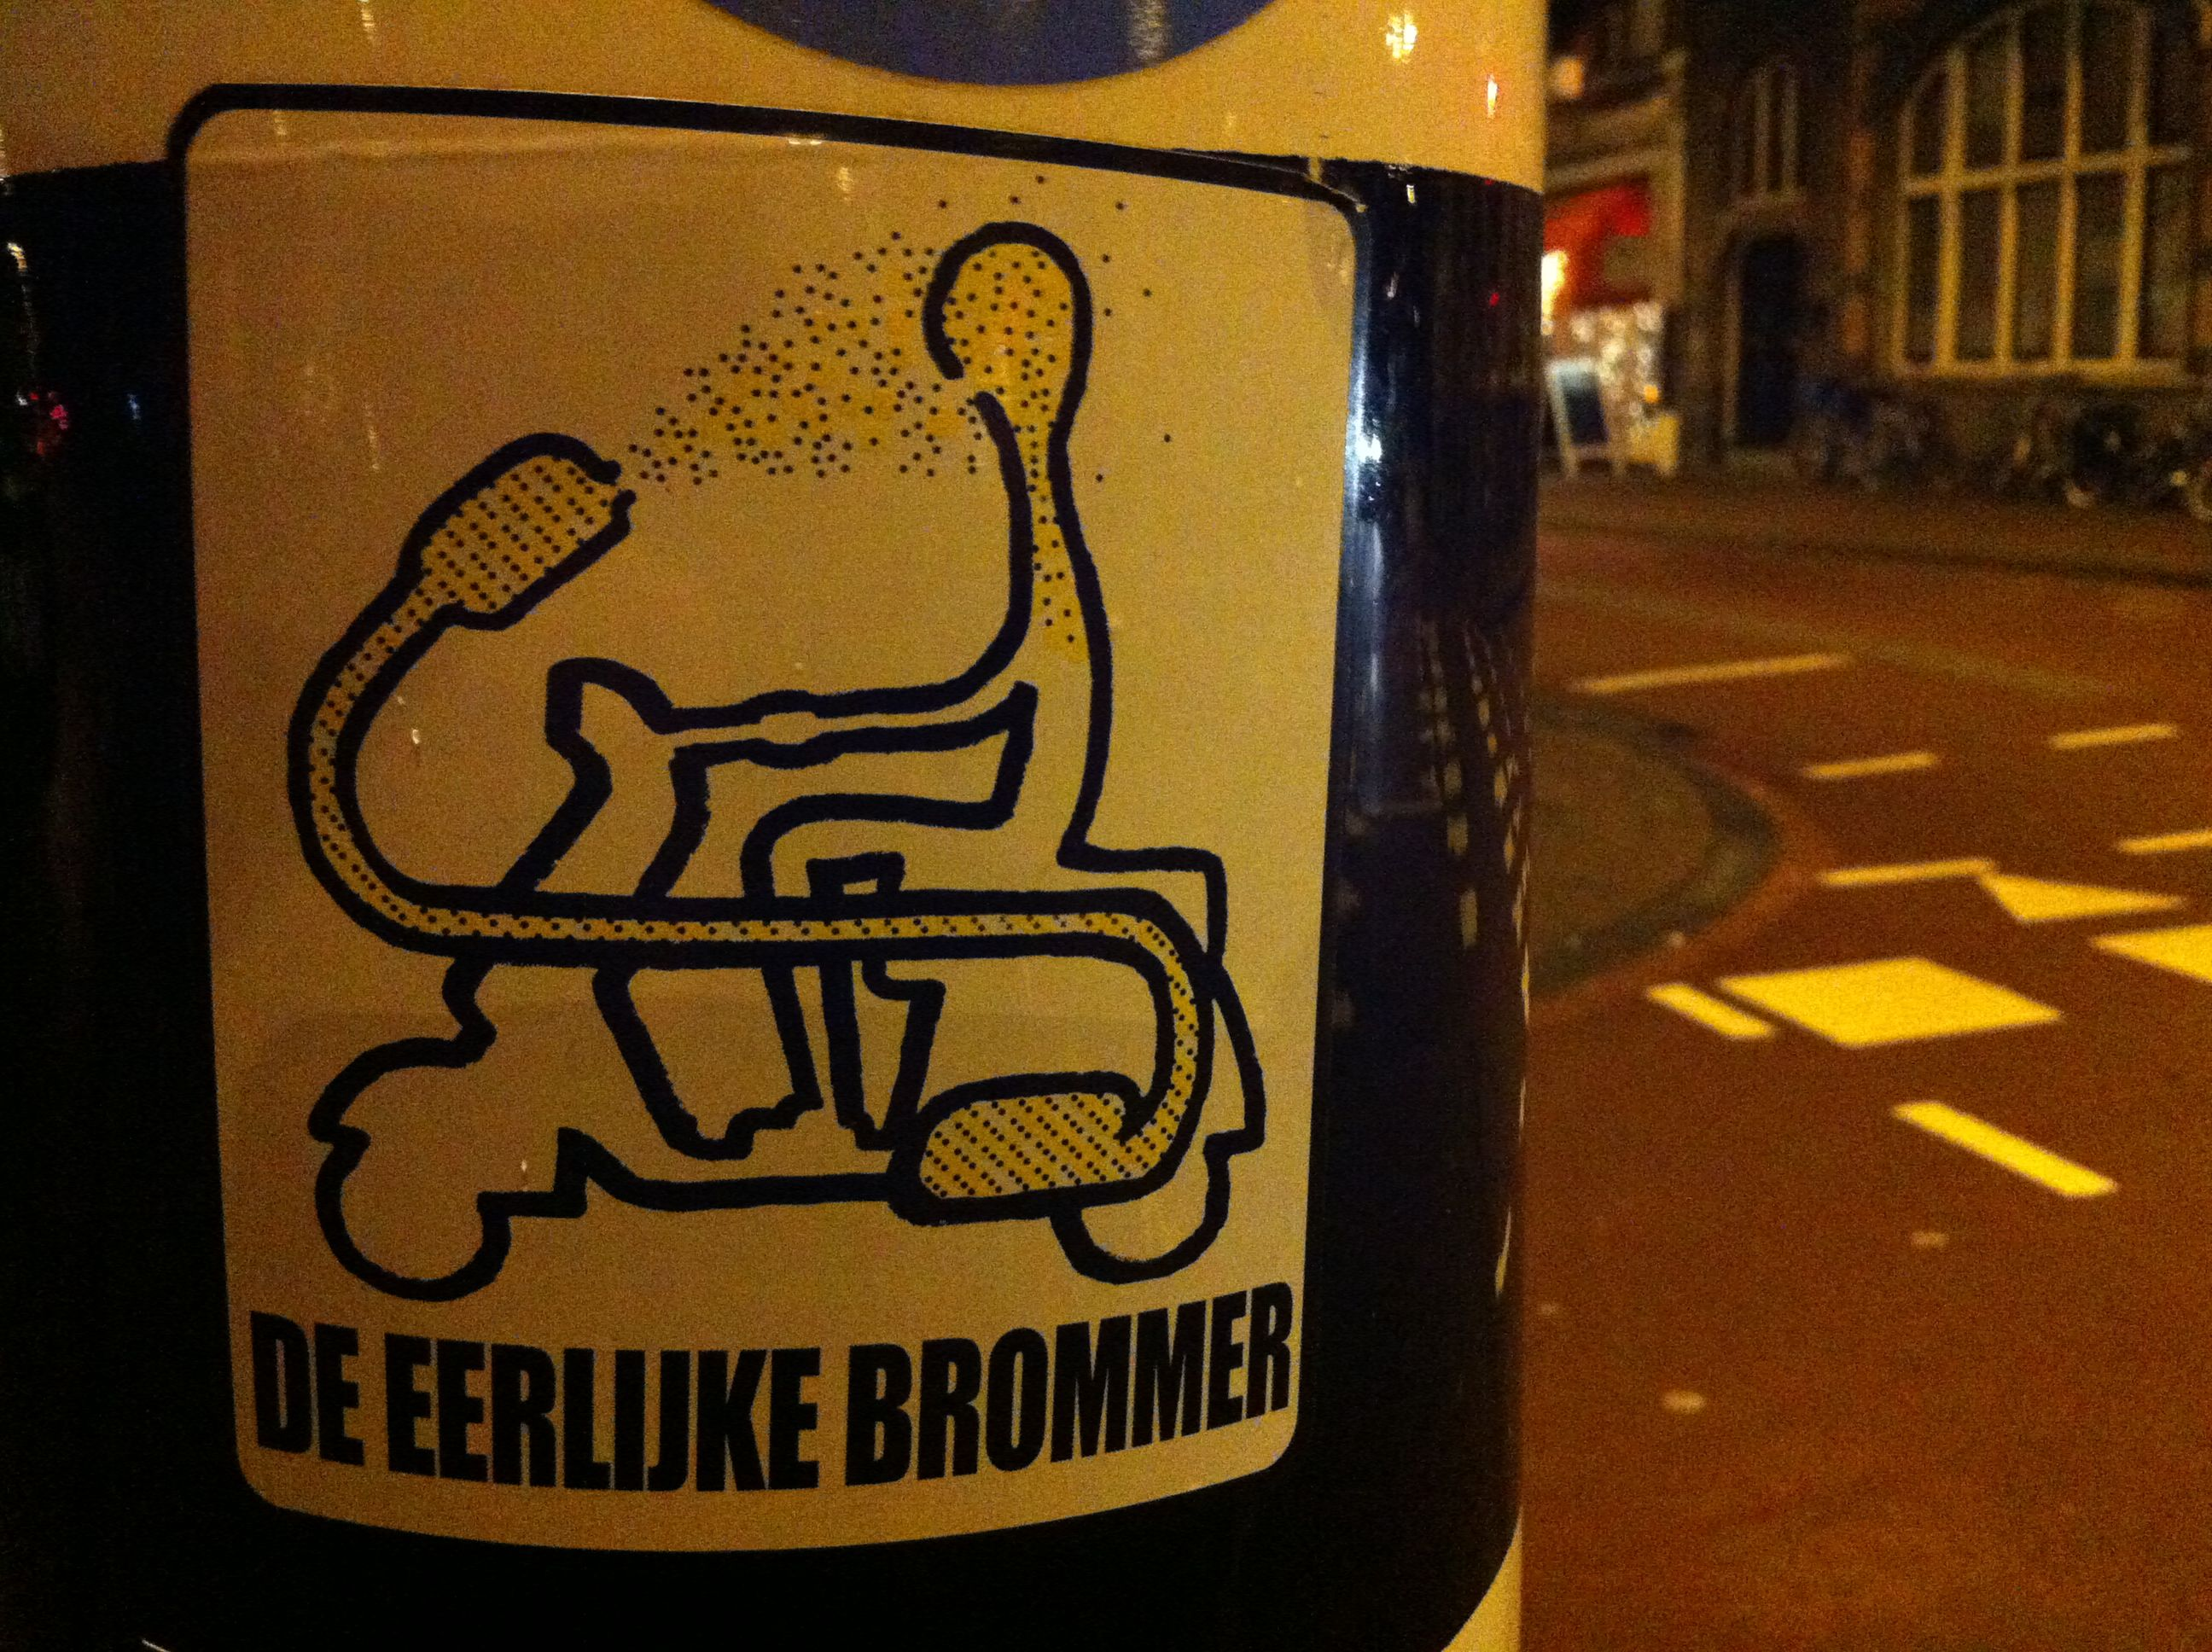 A real honest device for mopeds Found in Haarlem, NL